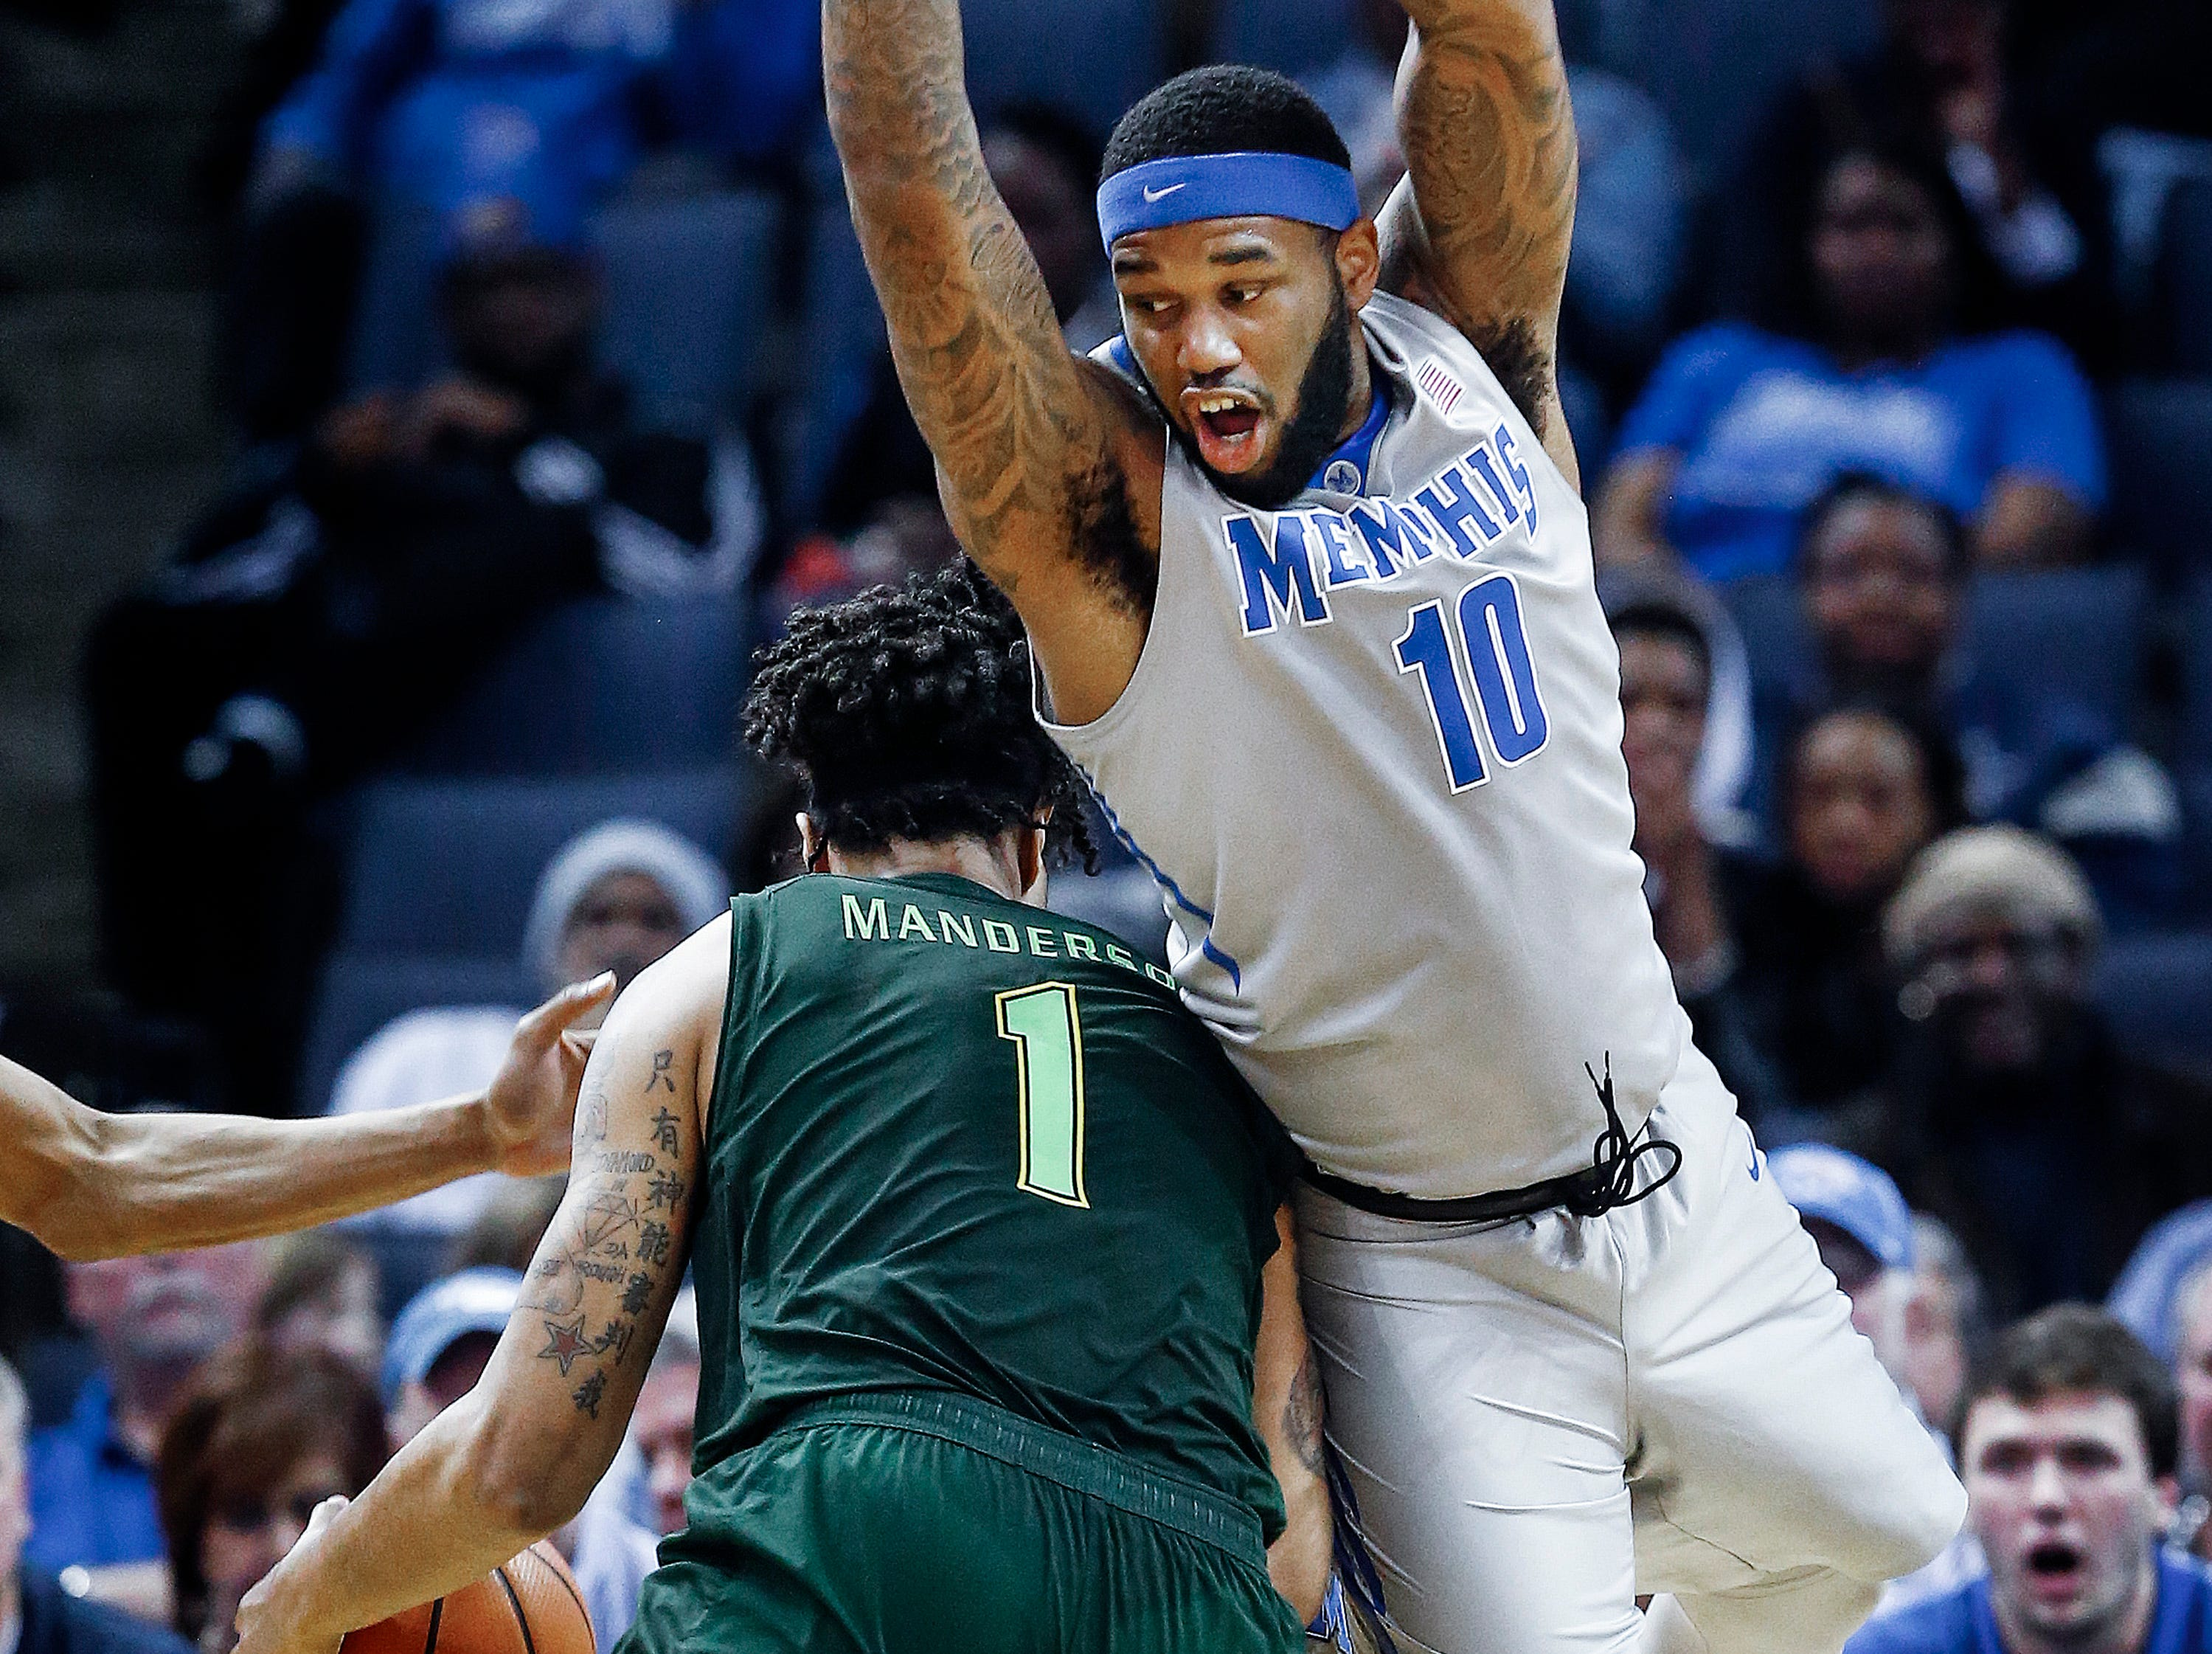 Memphis defender Mike Parks Jr. (right) fouls USF forward Isaiah Manderson (left) during second half action at the FedExForum in Memphis Tenn., Thursday, March 1, 2018.